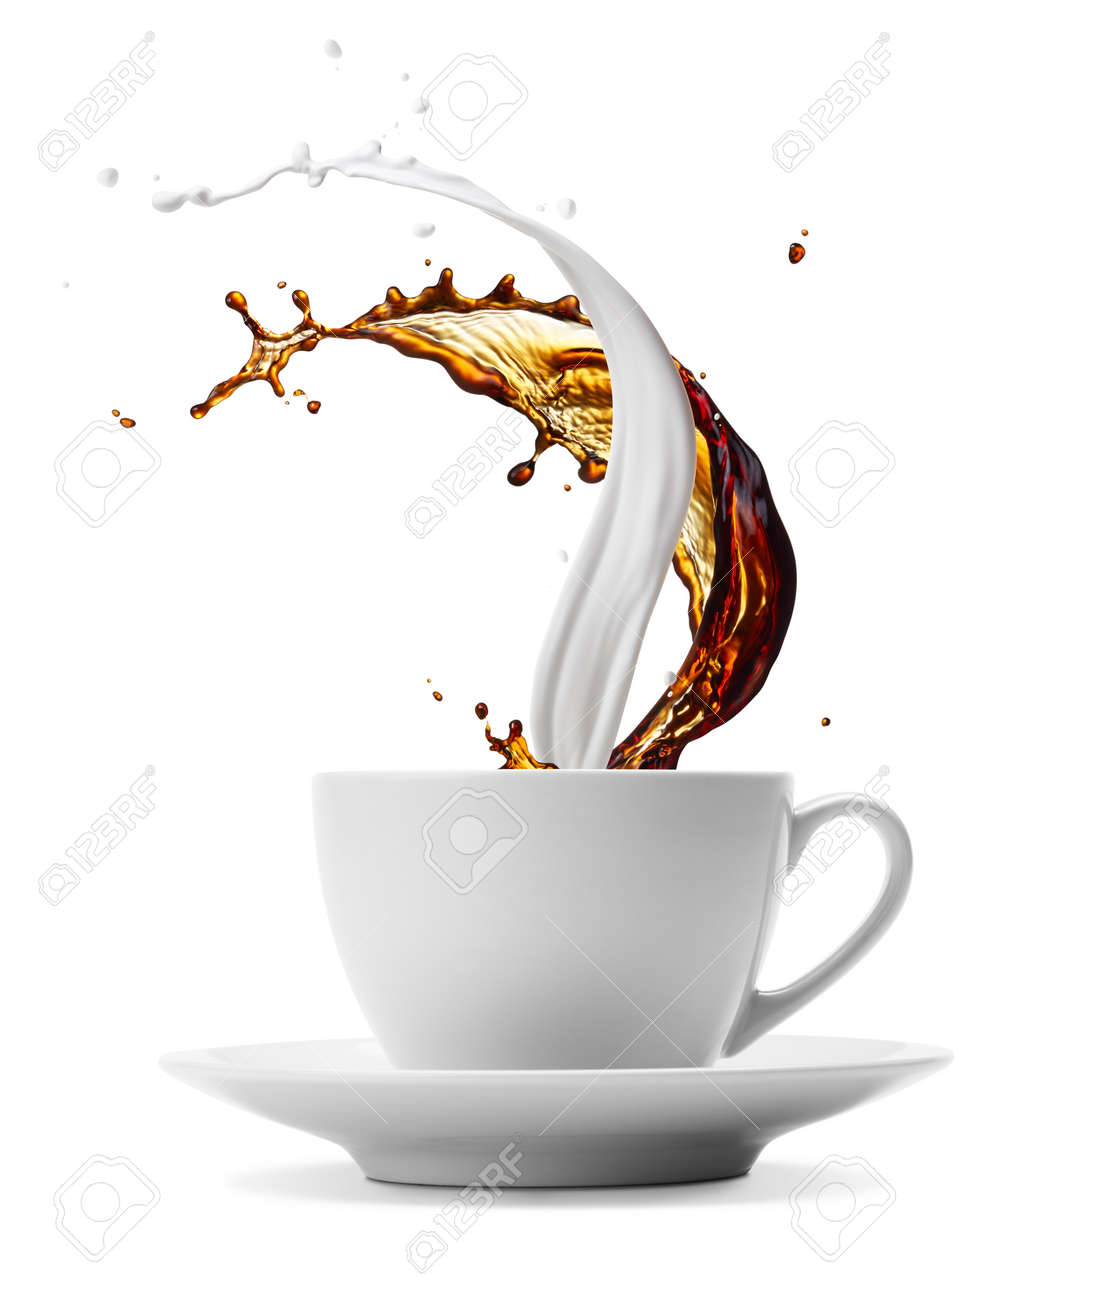 cup of coffee and milk splashes isolated on white - 59150810